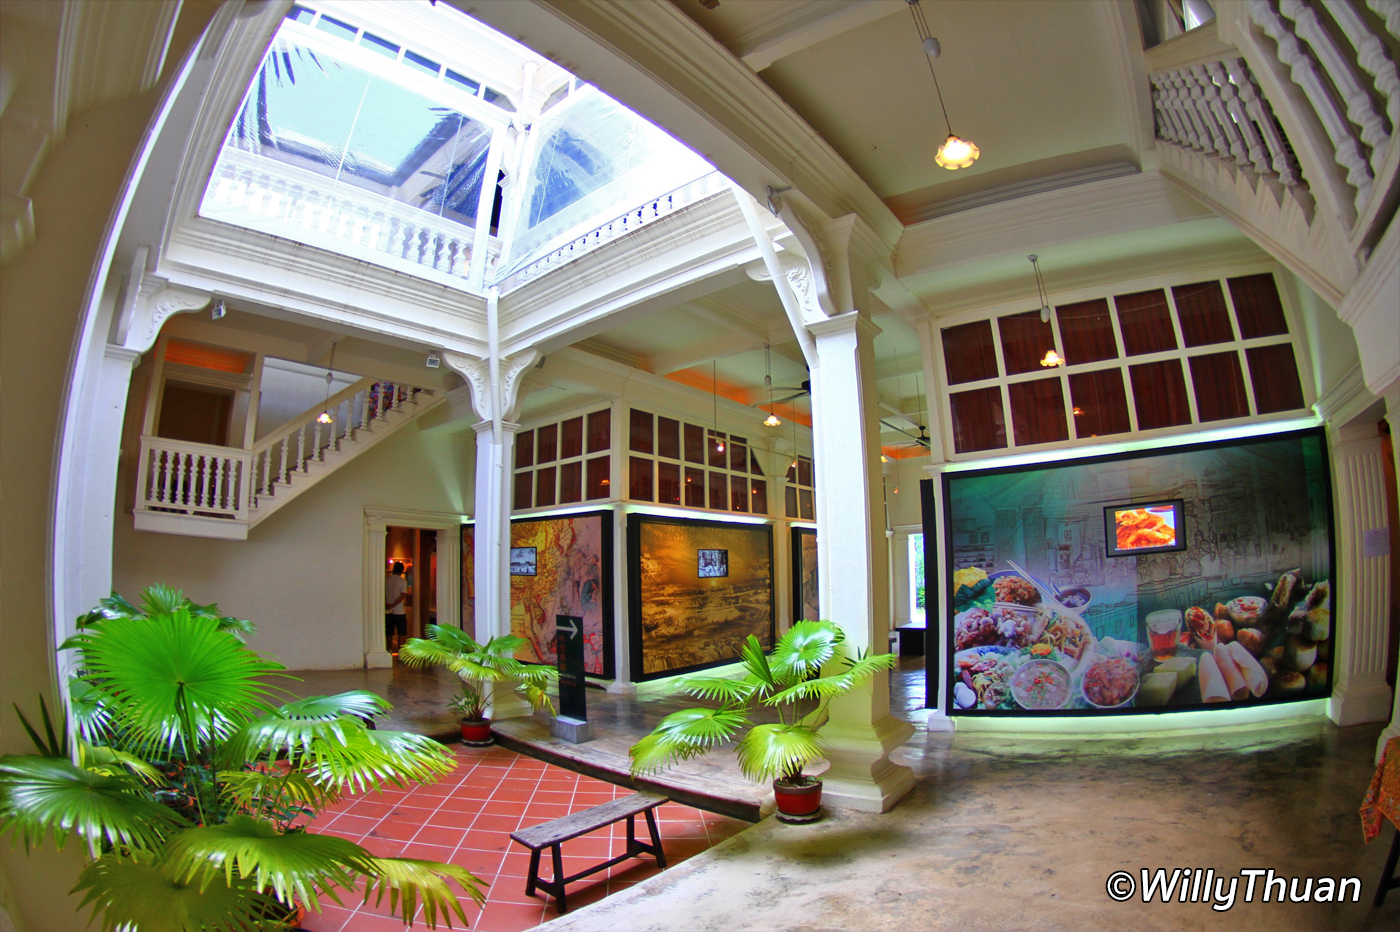 Phuket Museums and Historical Buildings in Phuket